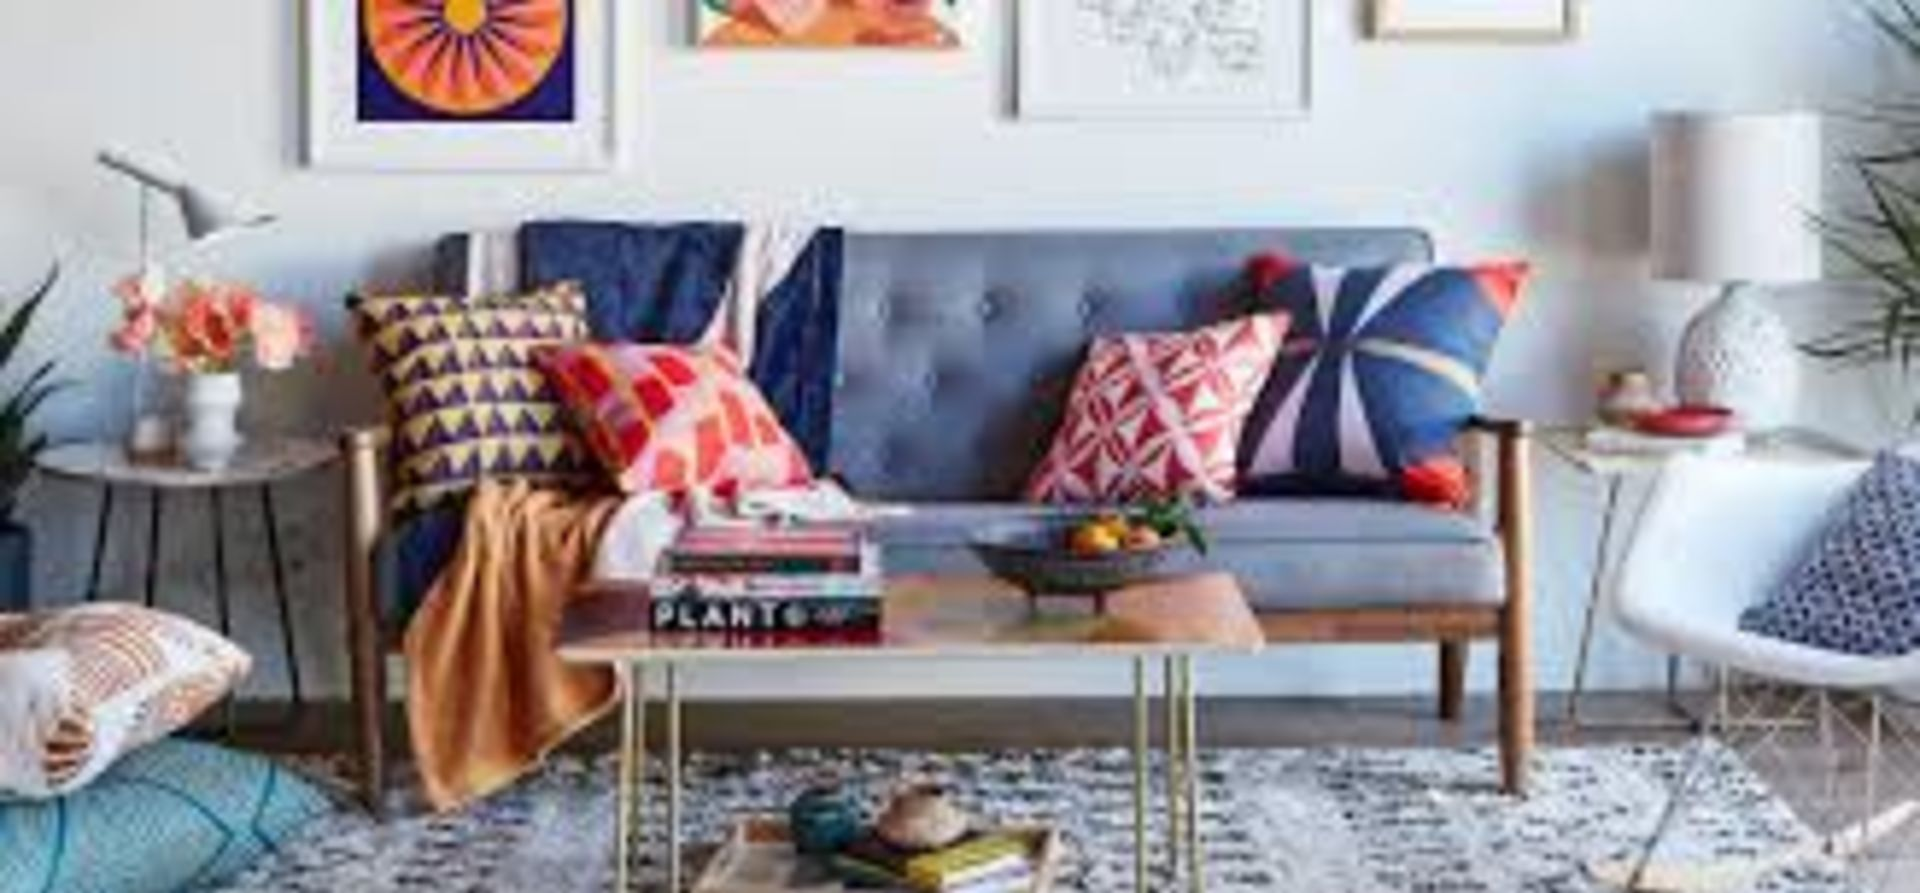 10 Unusual (and Easy) Ways to Upgrade Your Home Decor